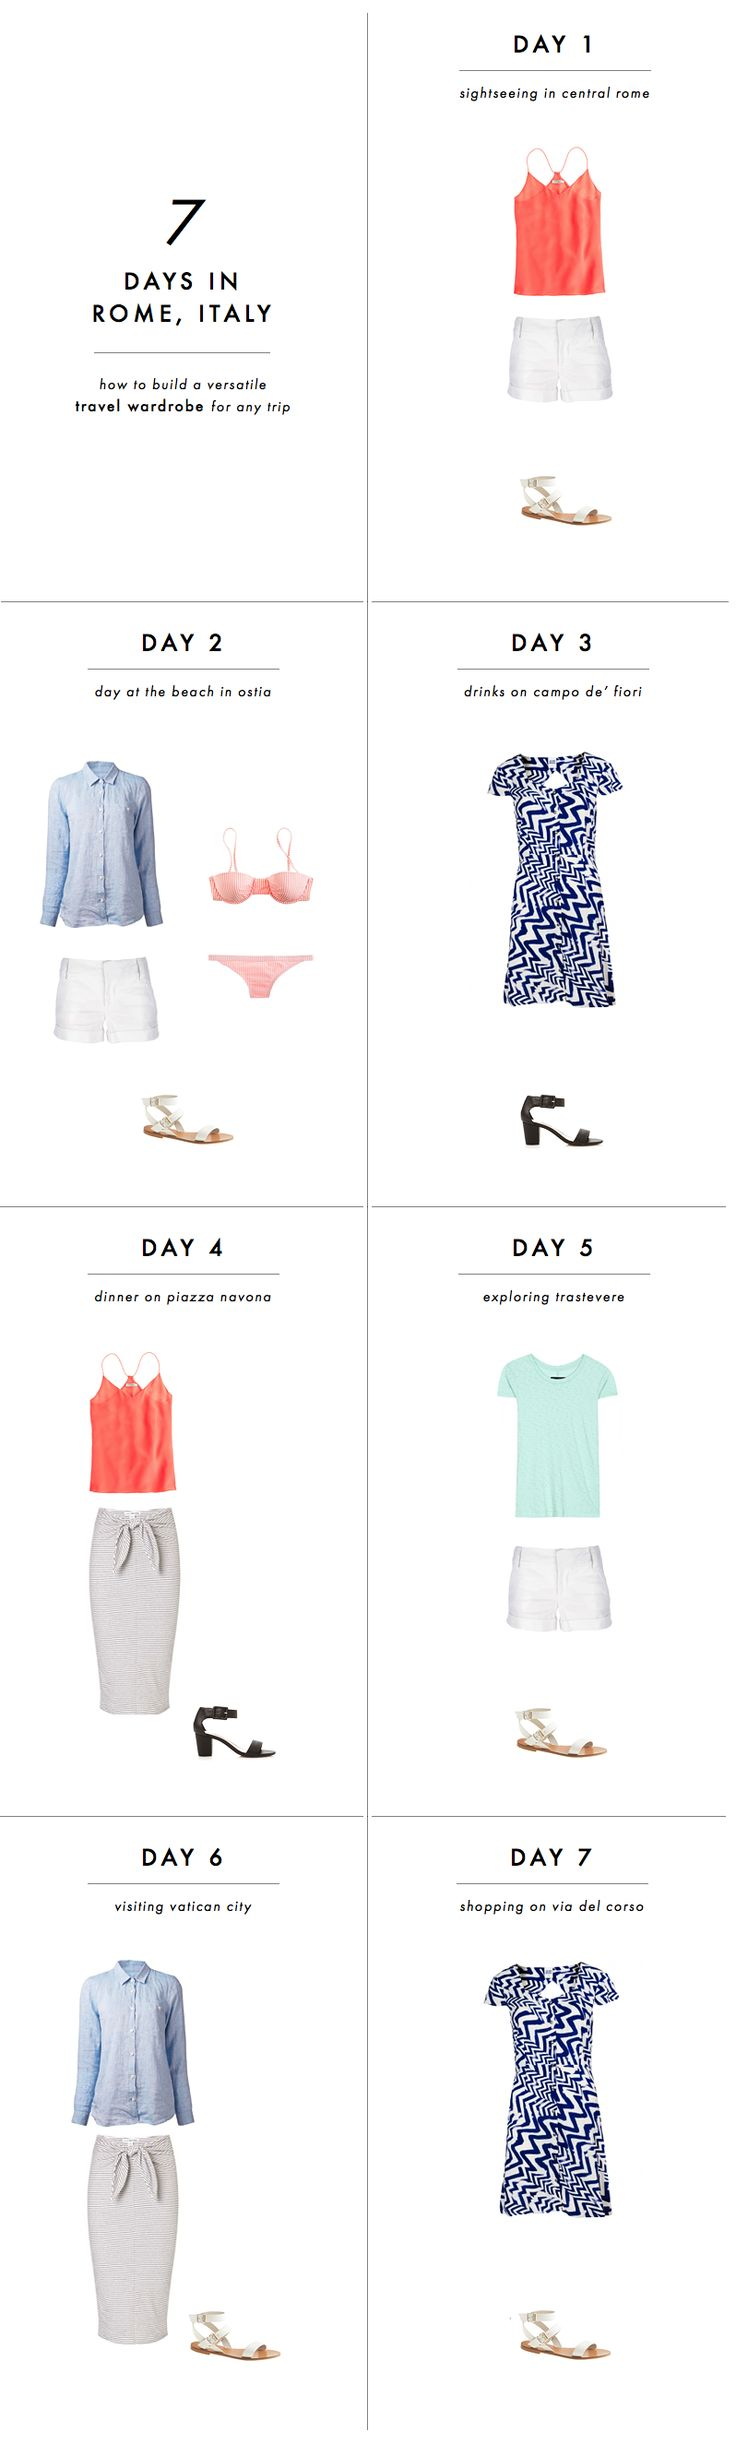 How to build a versatile travel wardrobe for any trip: A 3-step formula! #travel #Italy #fashion